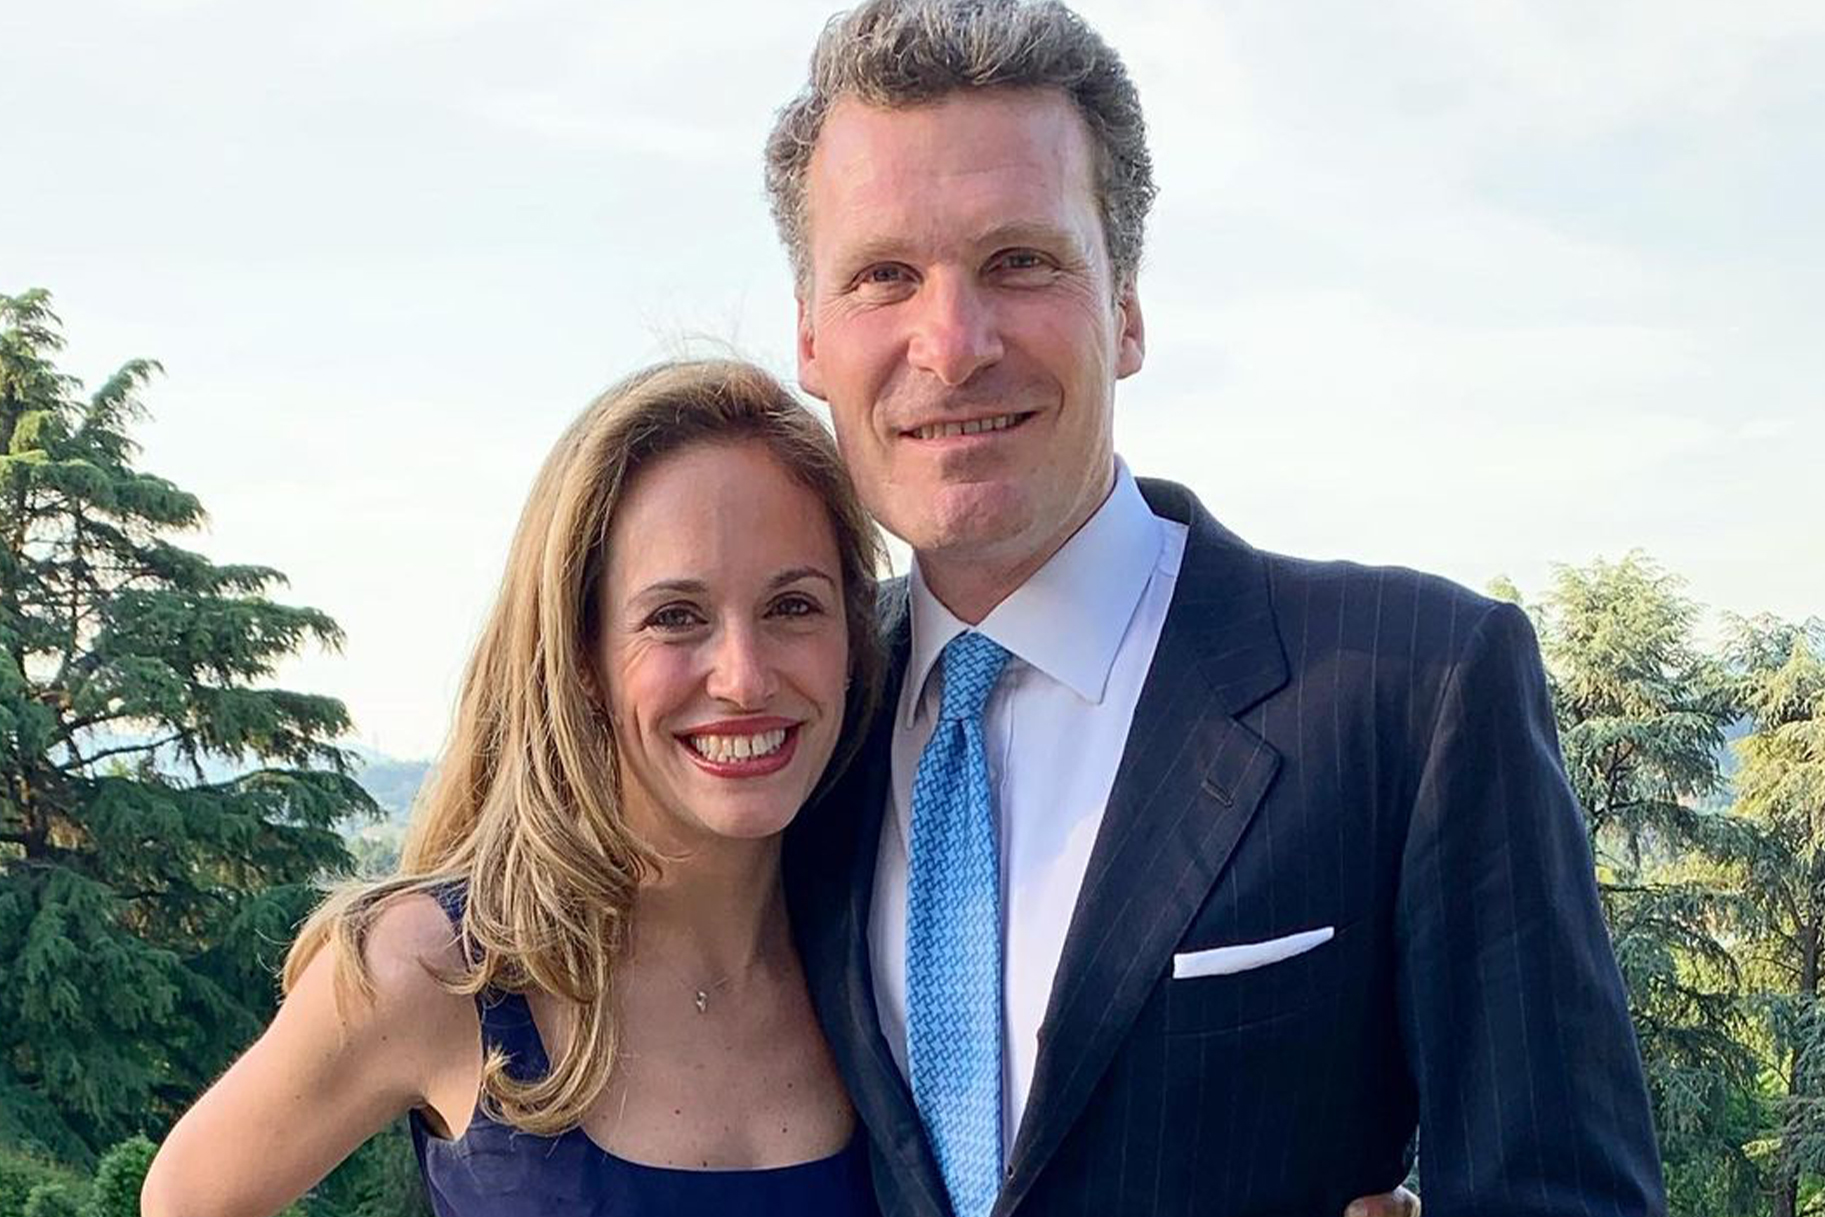 Kirsten Jordan Listings With Husband